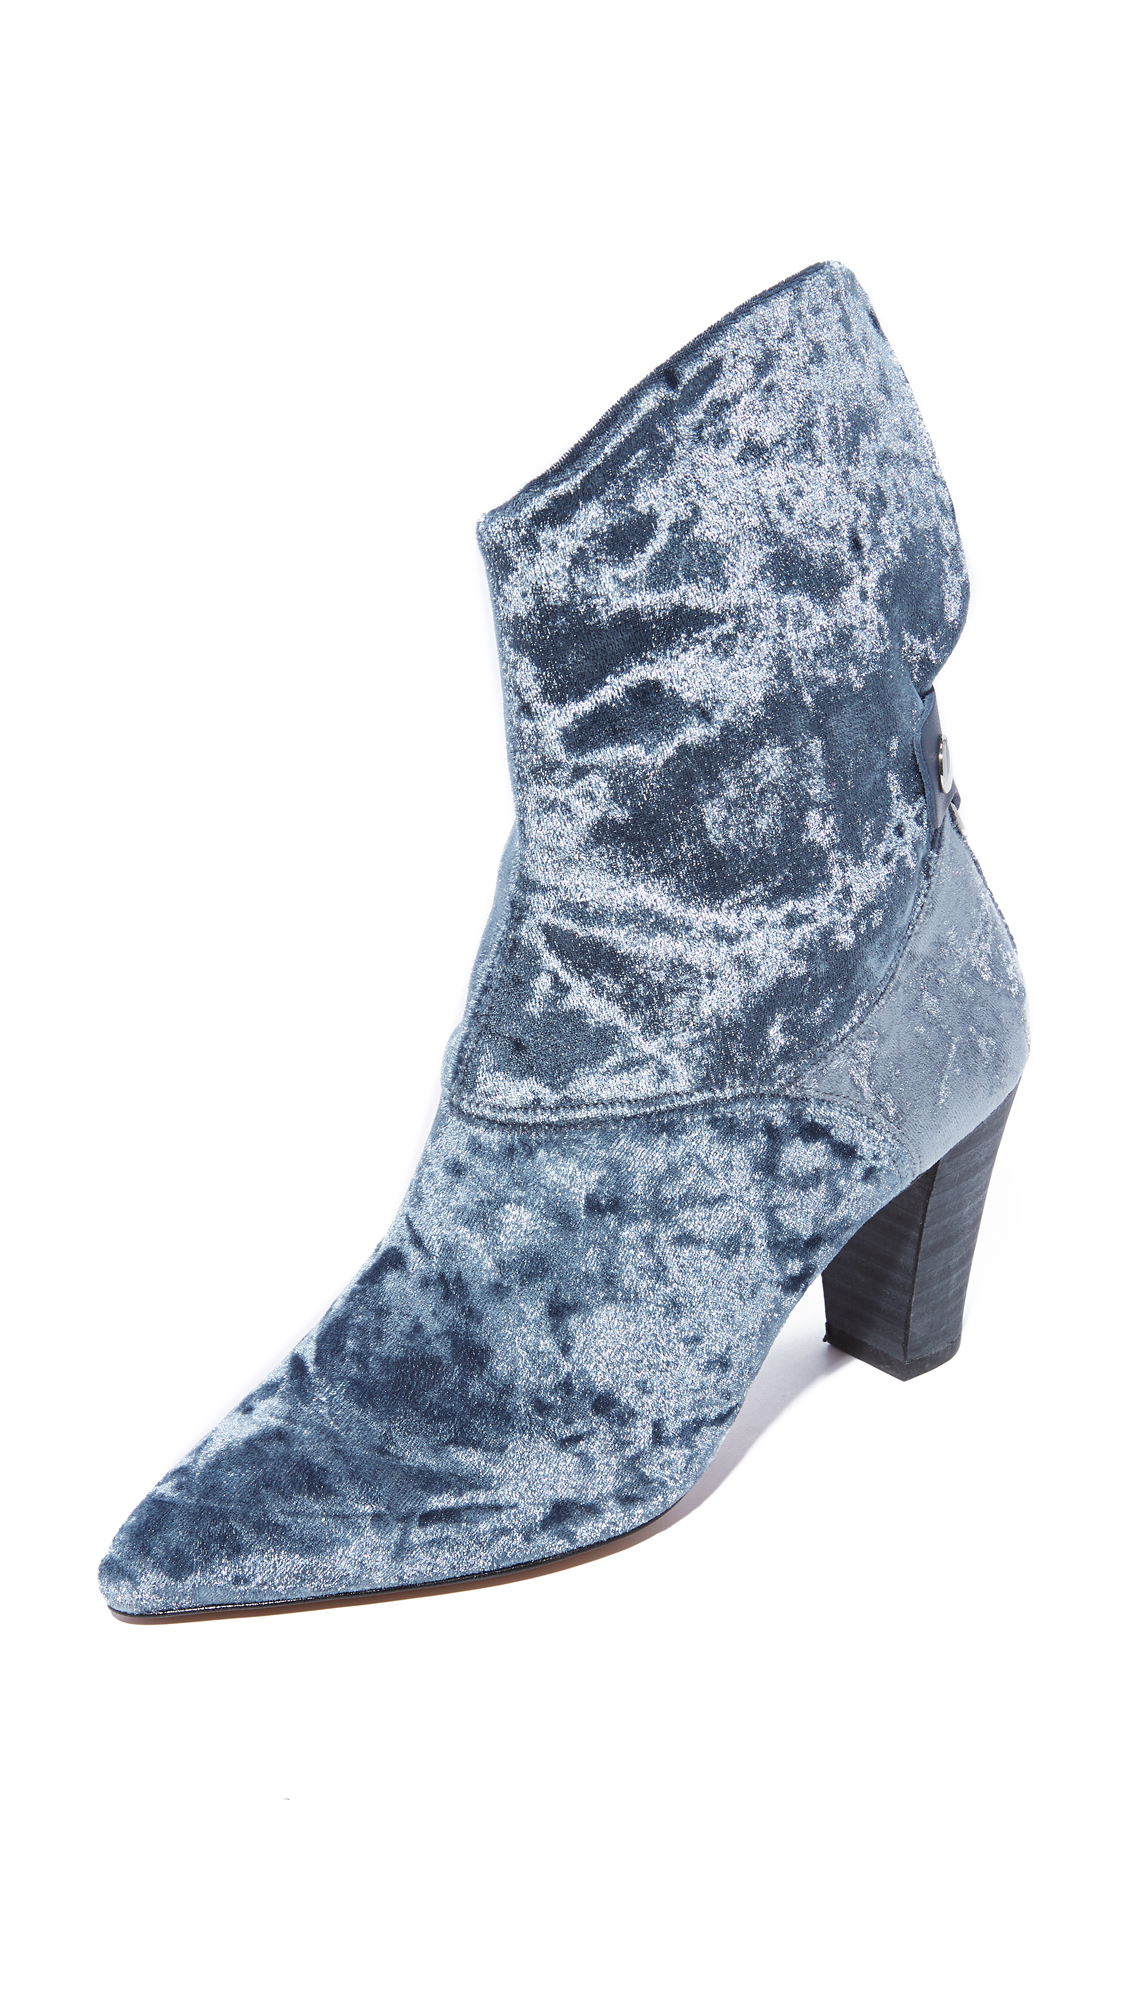 Free People Moonlight Heel Booties - Grey